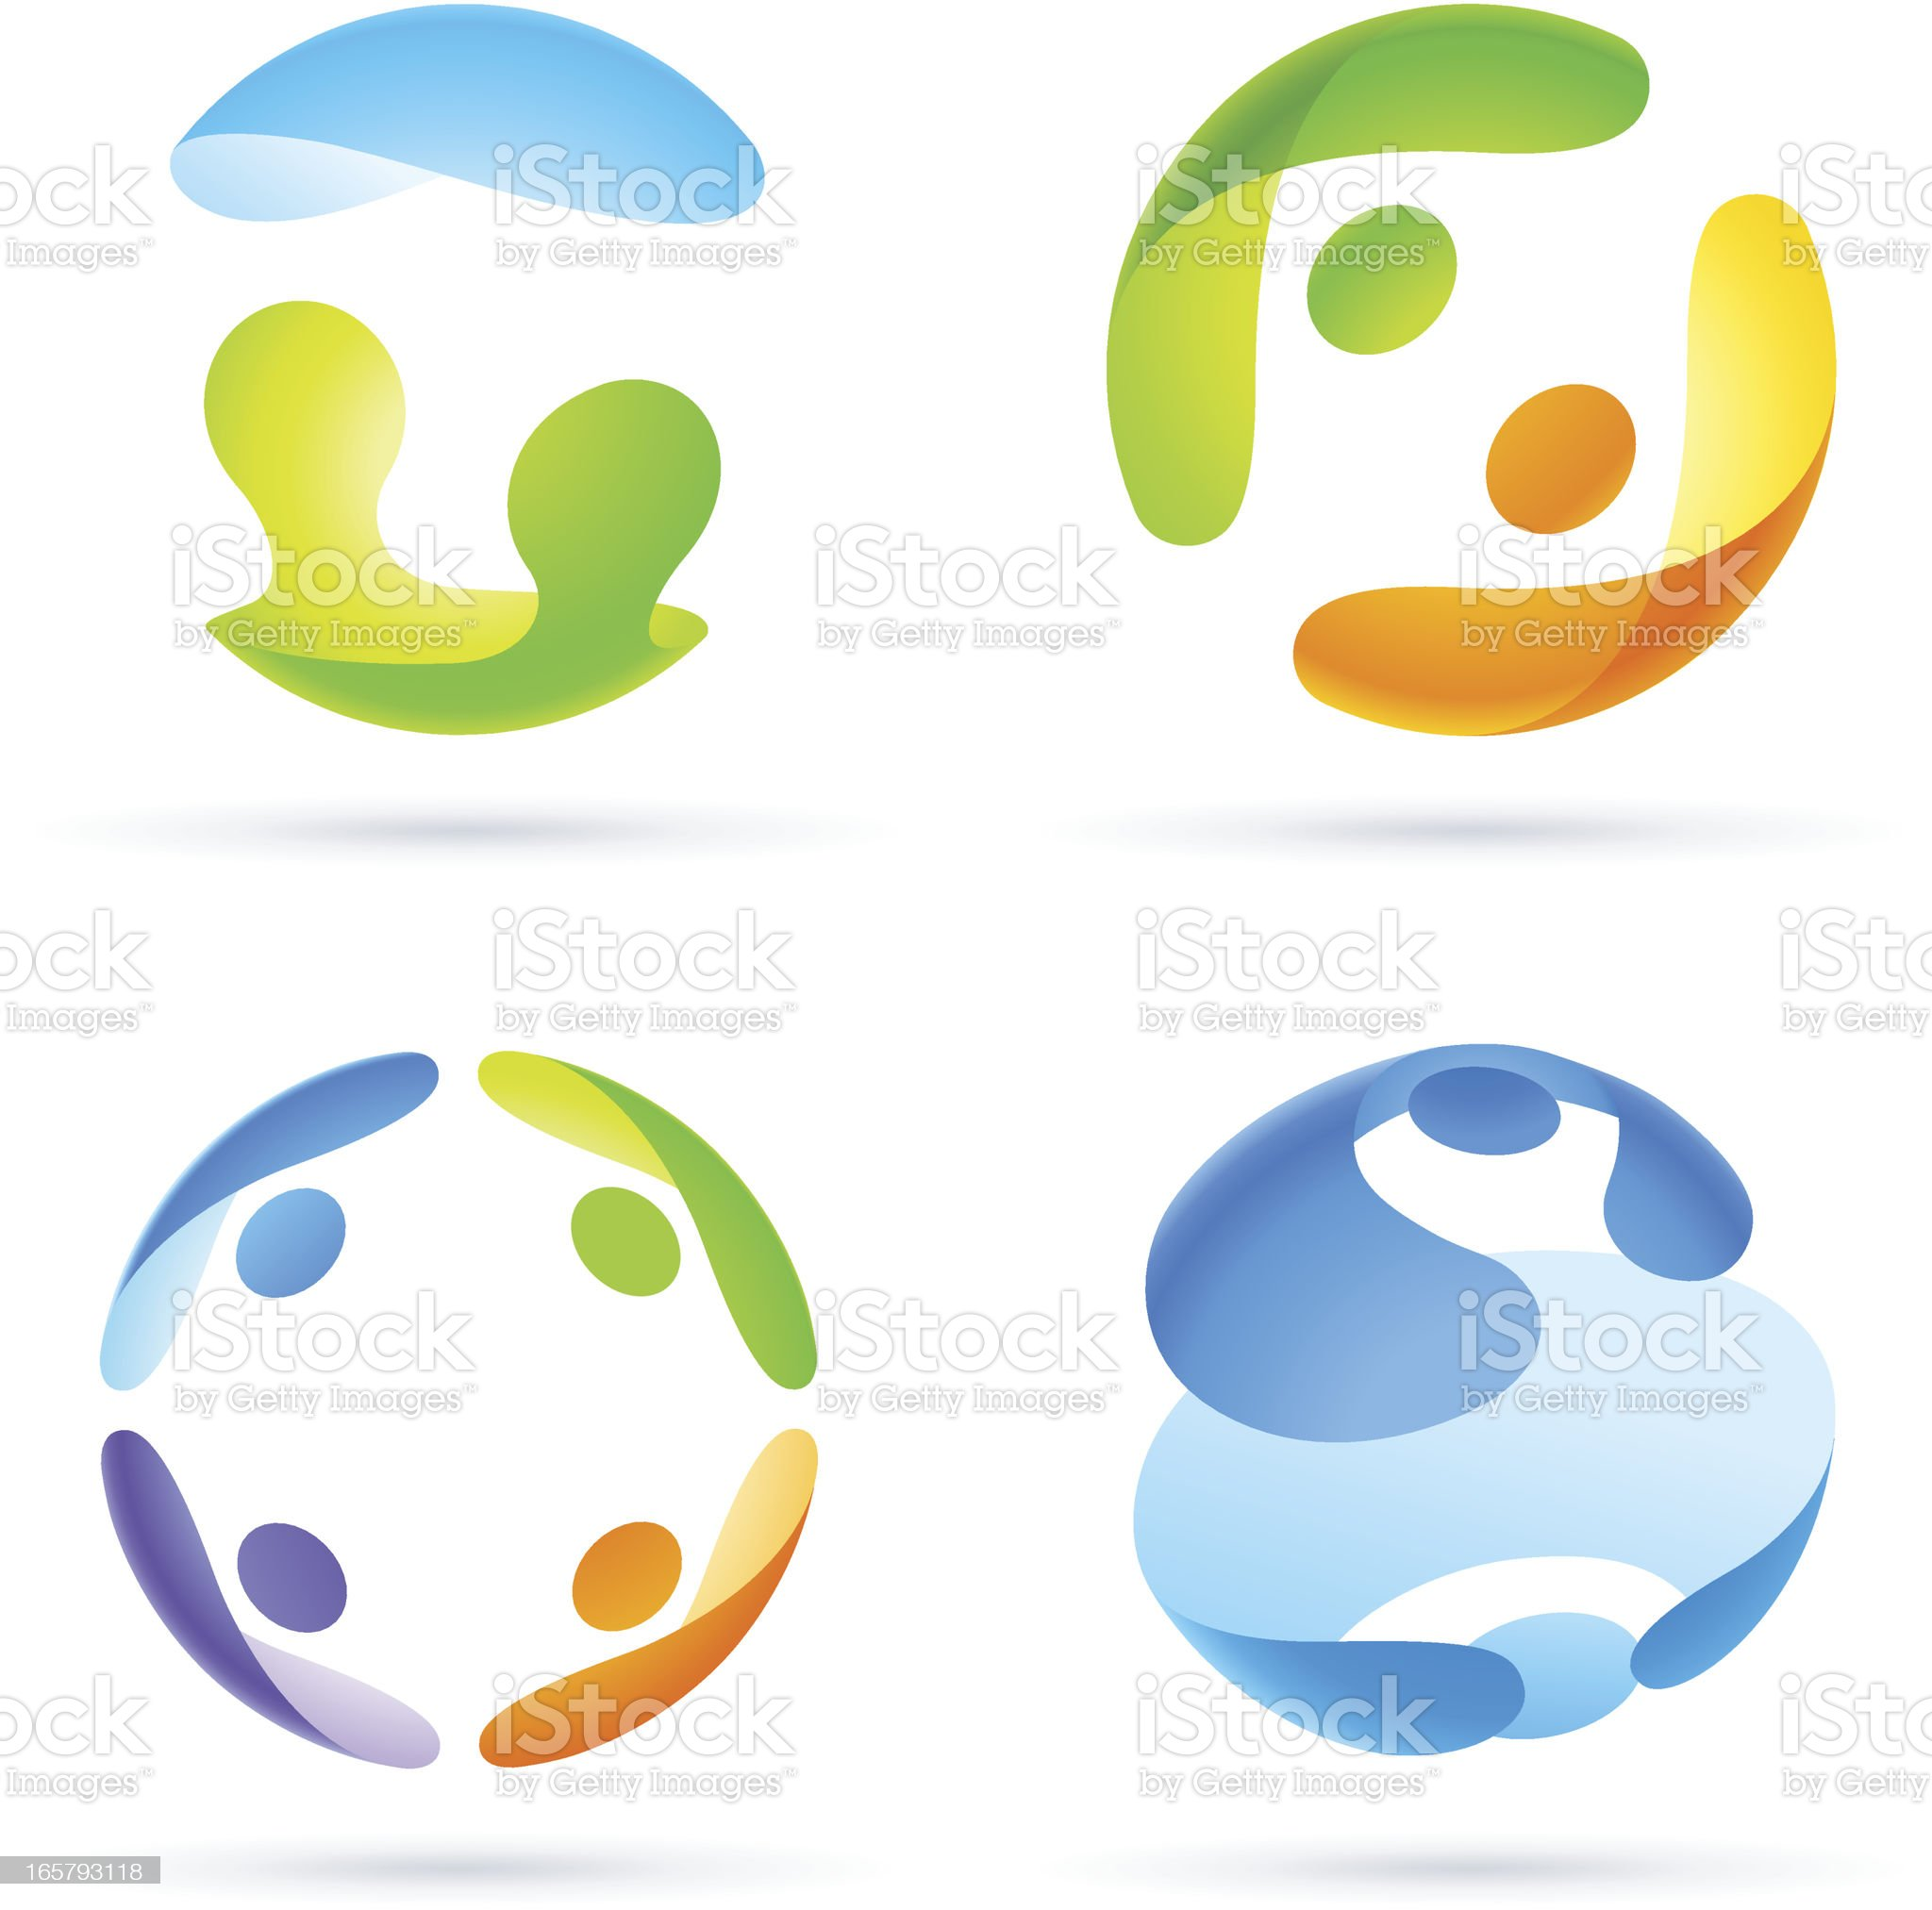 People in Sphere #11 royalty-free stock vector art